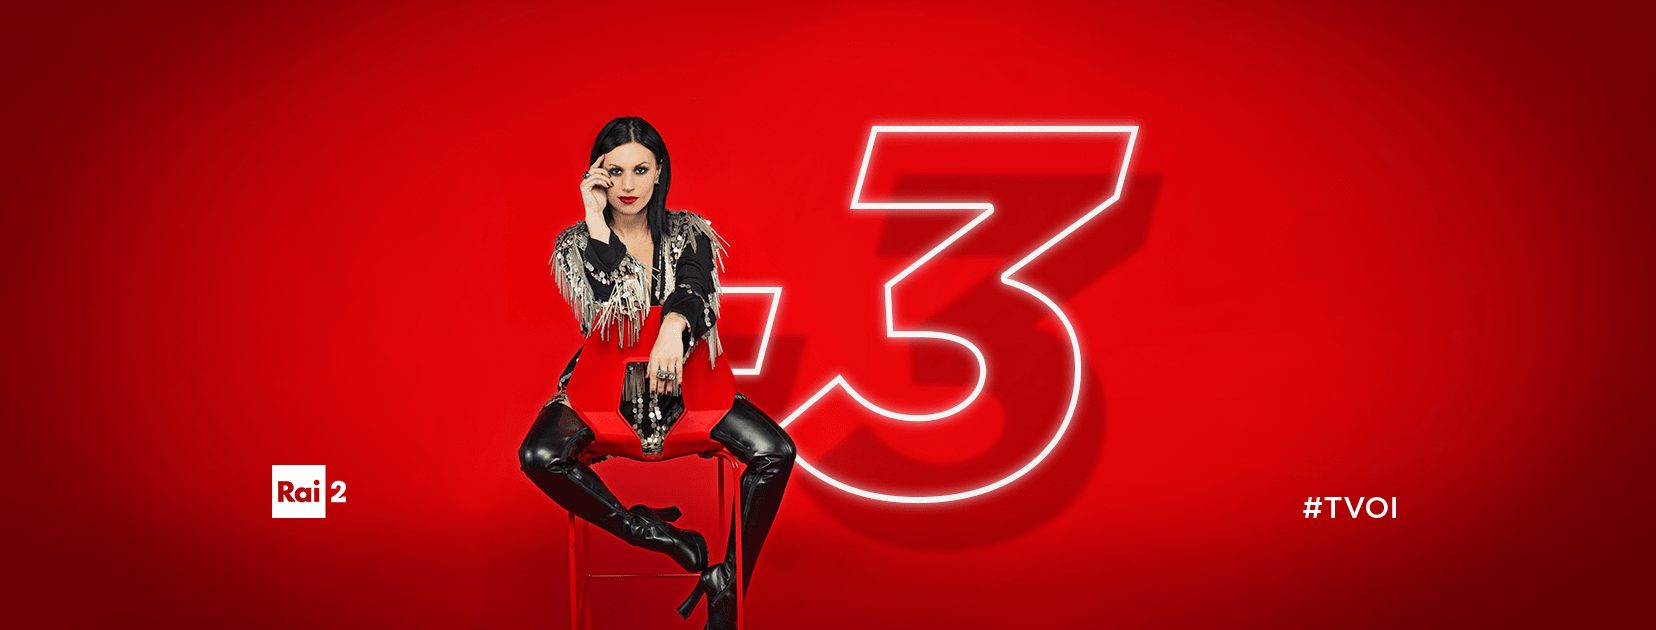 cristina scabbia the voice 2018 contro francesco renga